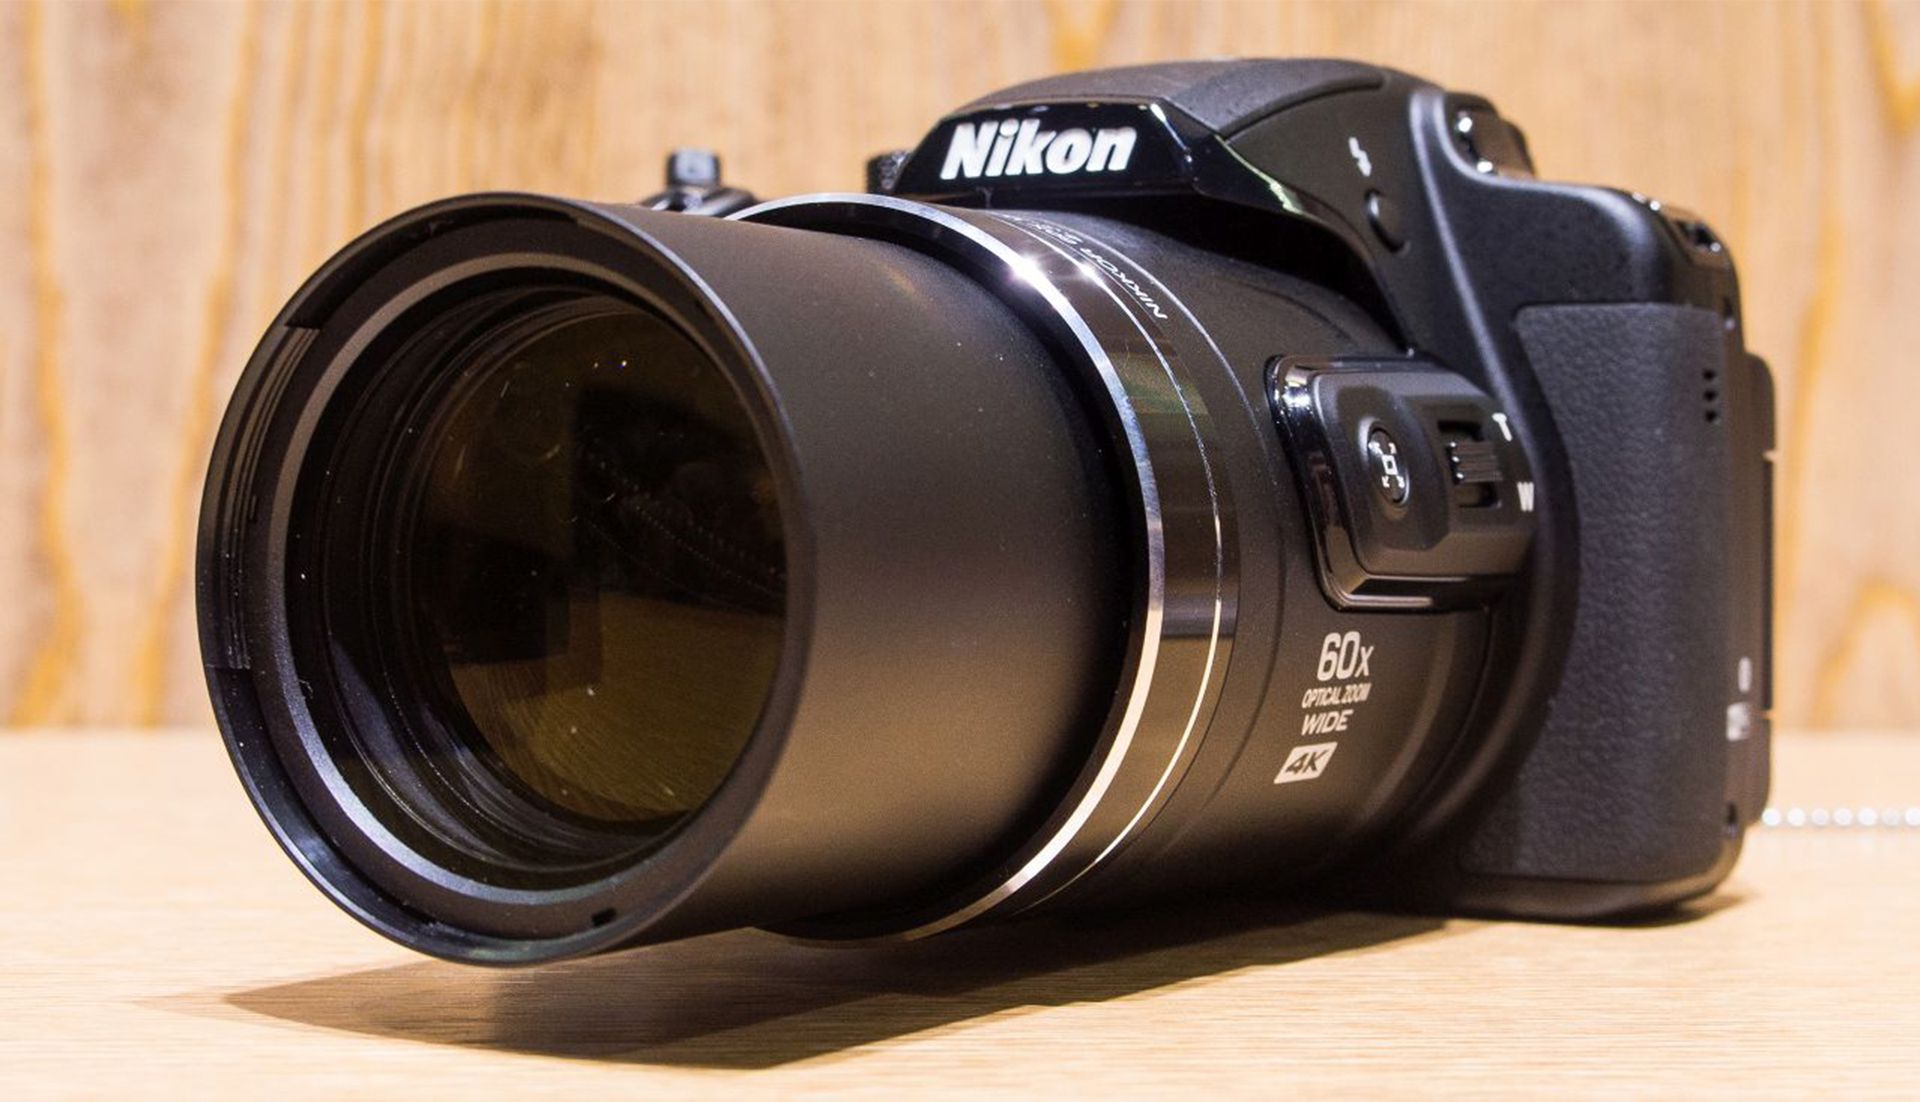 Download Firmware 1 1 for Nikon's COOLPIX B700 Digital